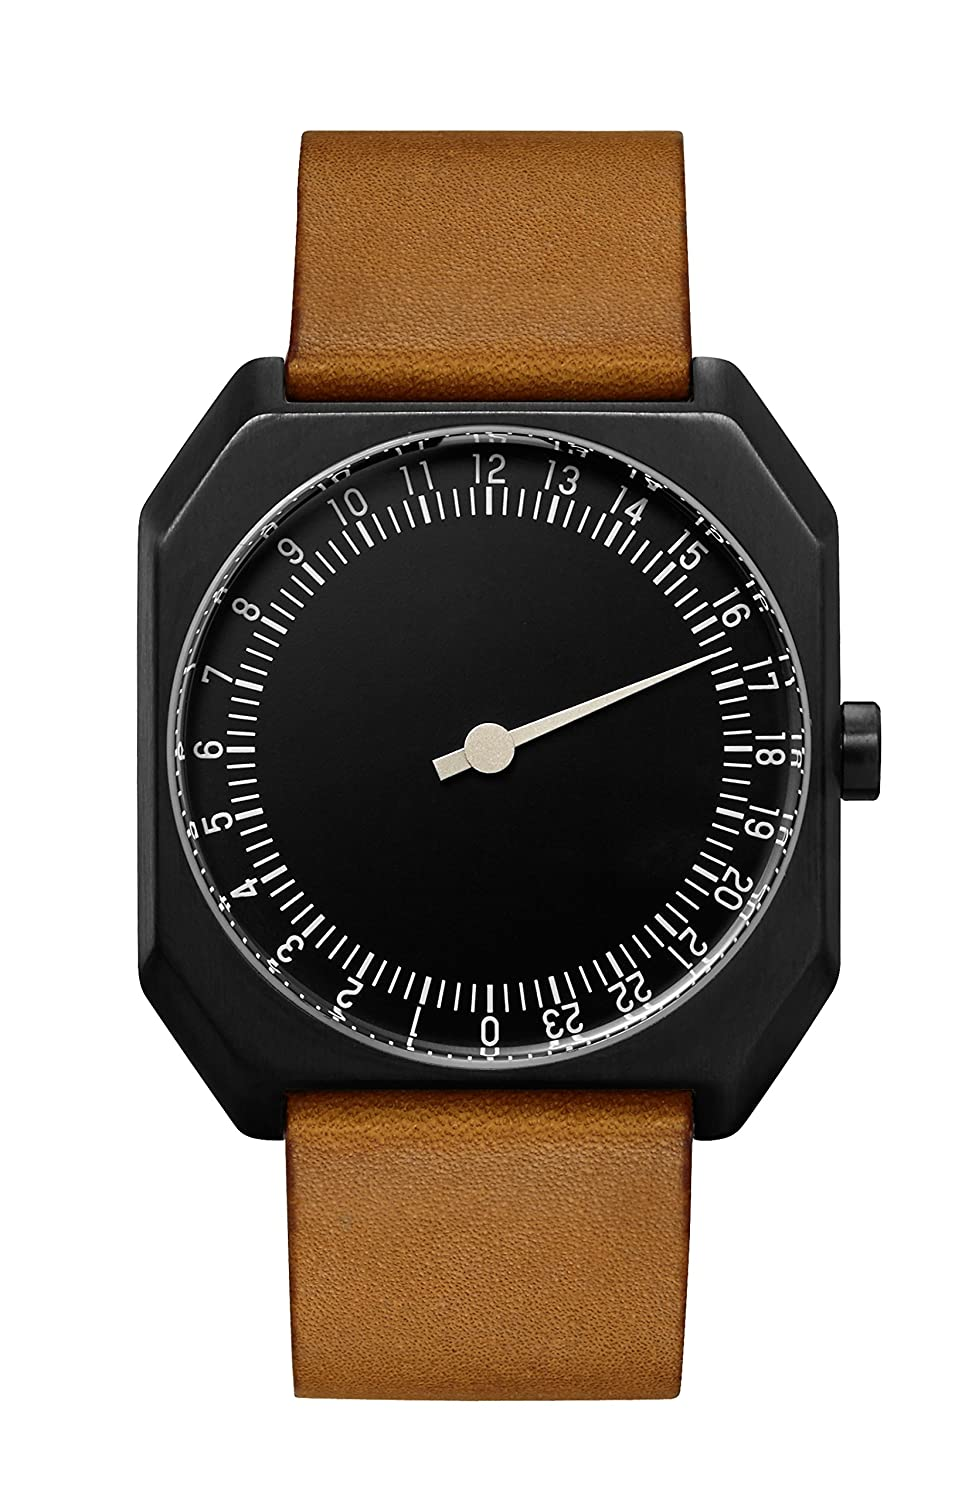 Amazon.com: slow Jo 19 - Swiss Made one-hand 24 hour watch - Black with brown leather band: The guys who do slow: Watches